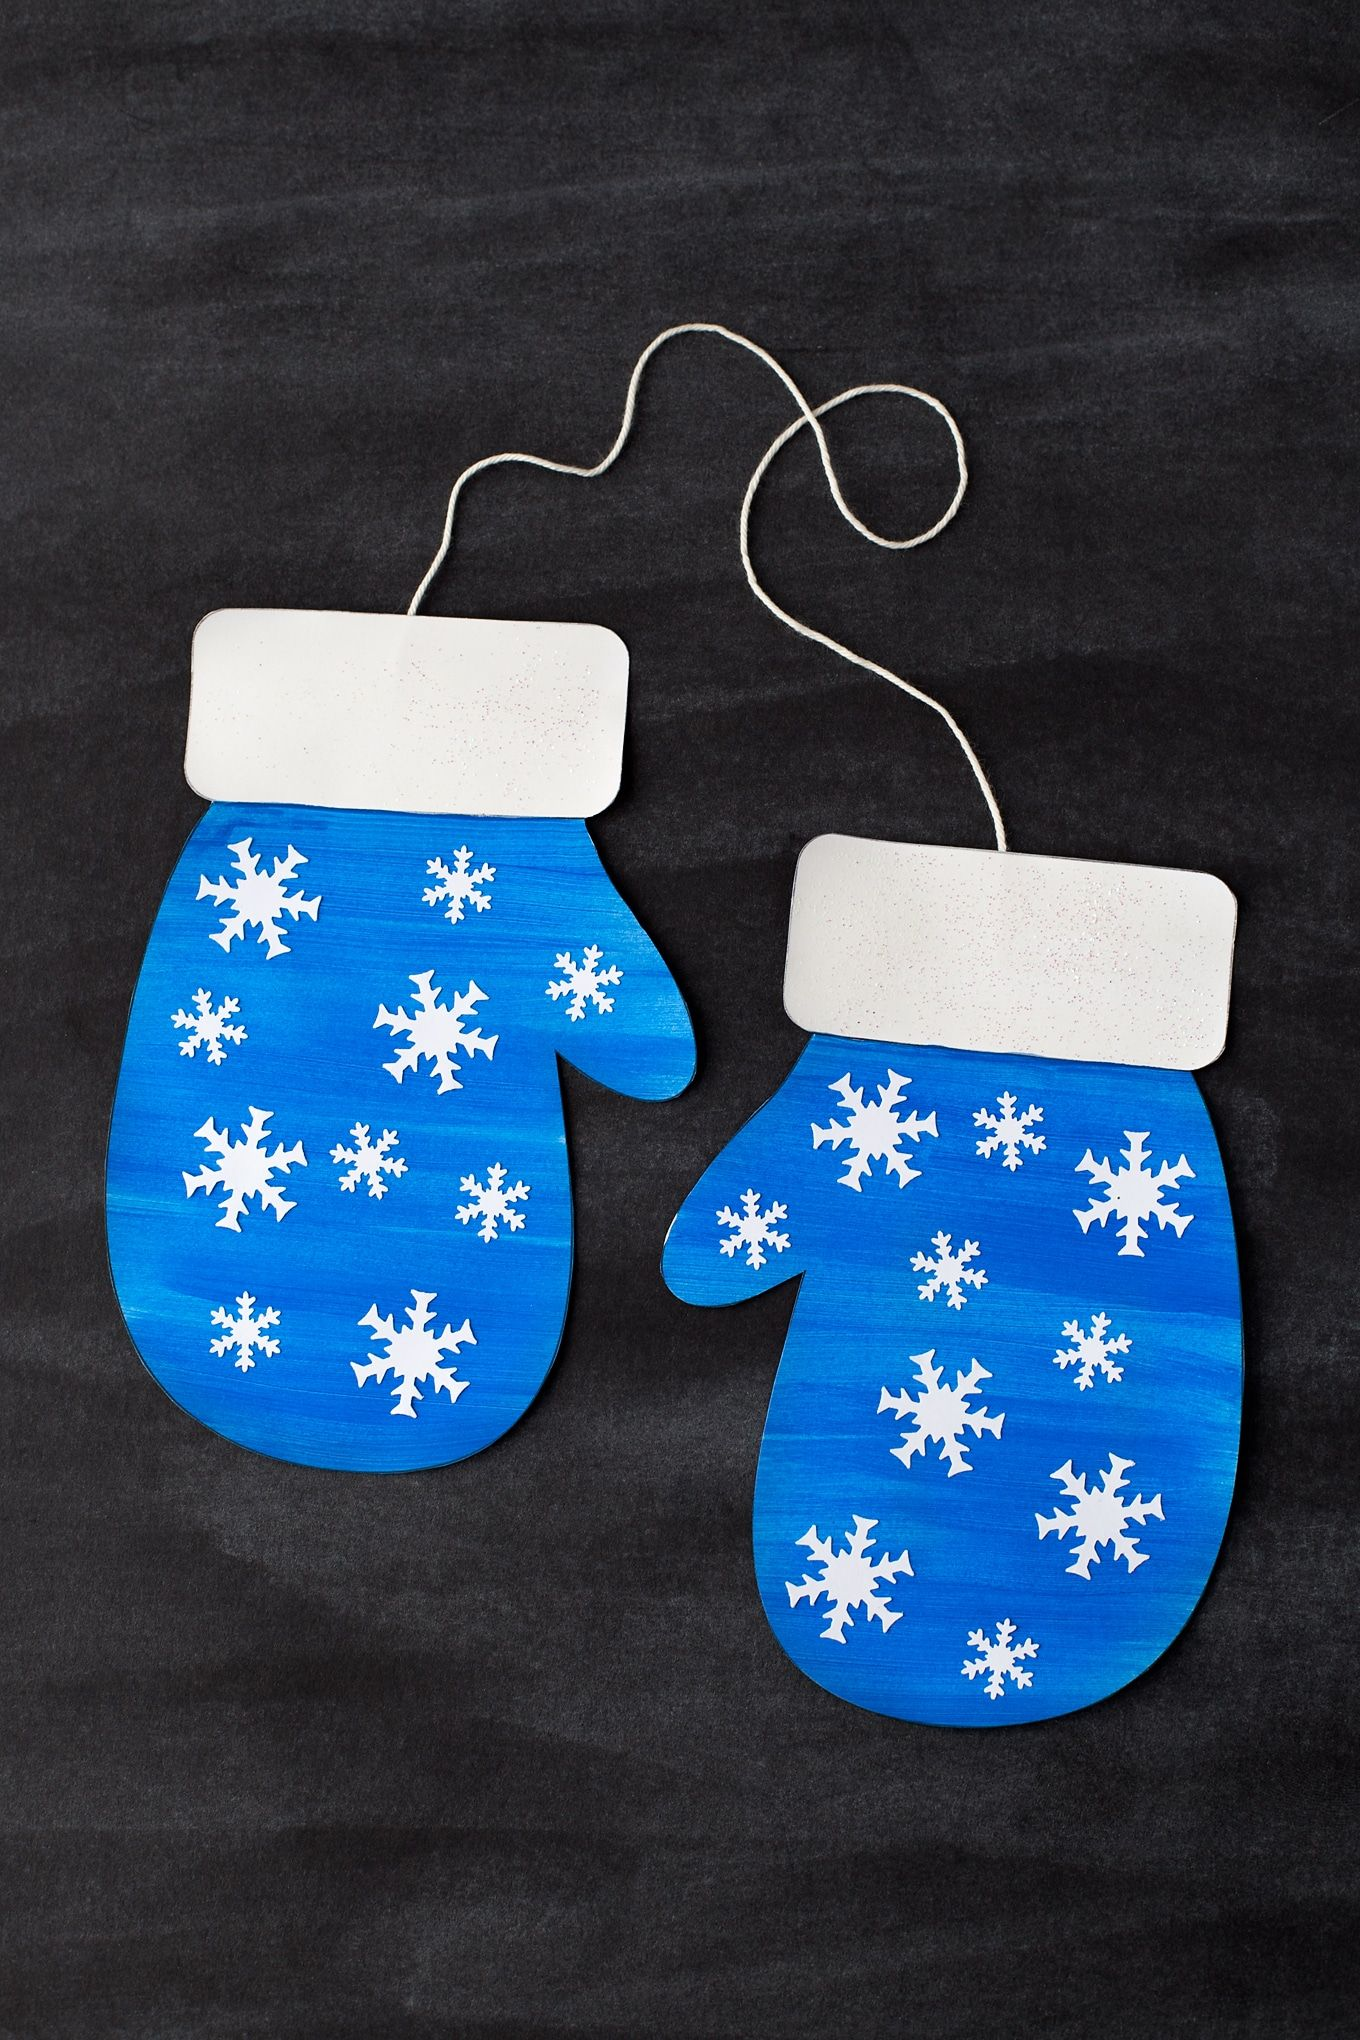 Winter is the perfect season for mitten crafts! Kids of all ages will enjoy using our printable template, washable paint, and craft supplies to create a fun and colorful mitten craft at home or school.